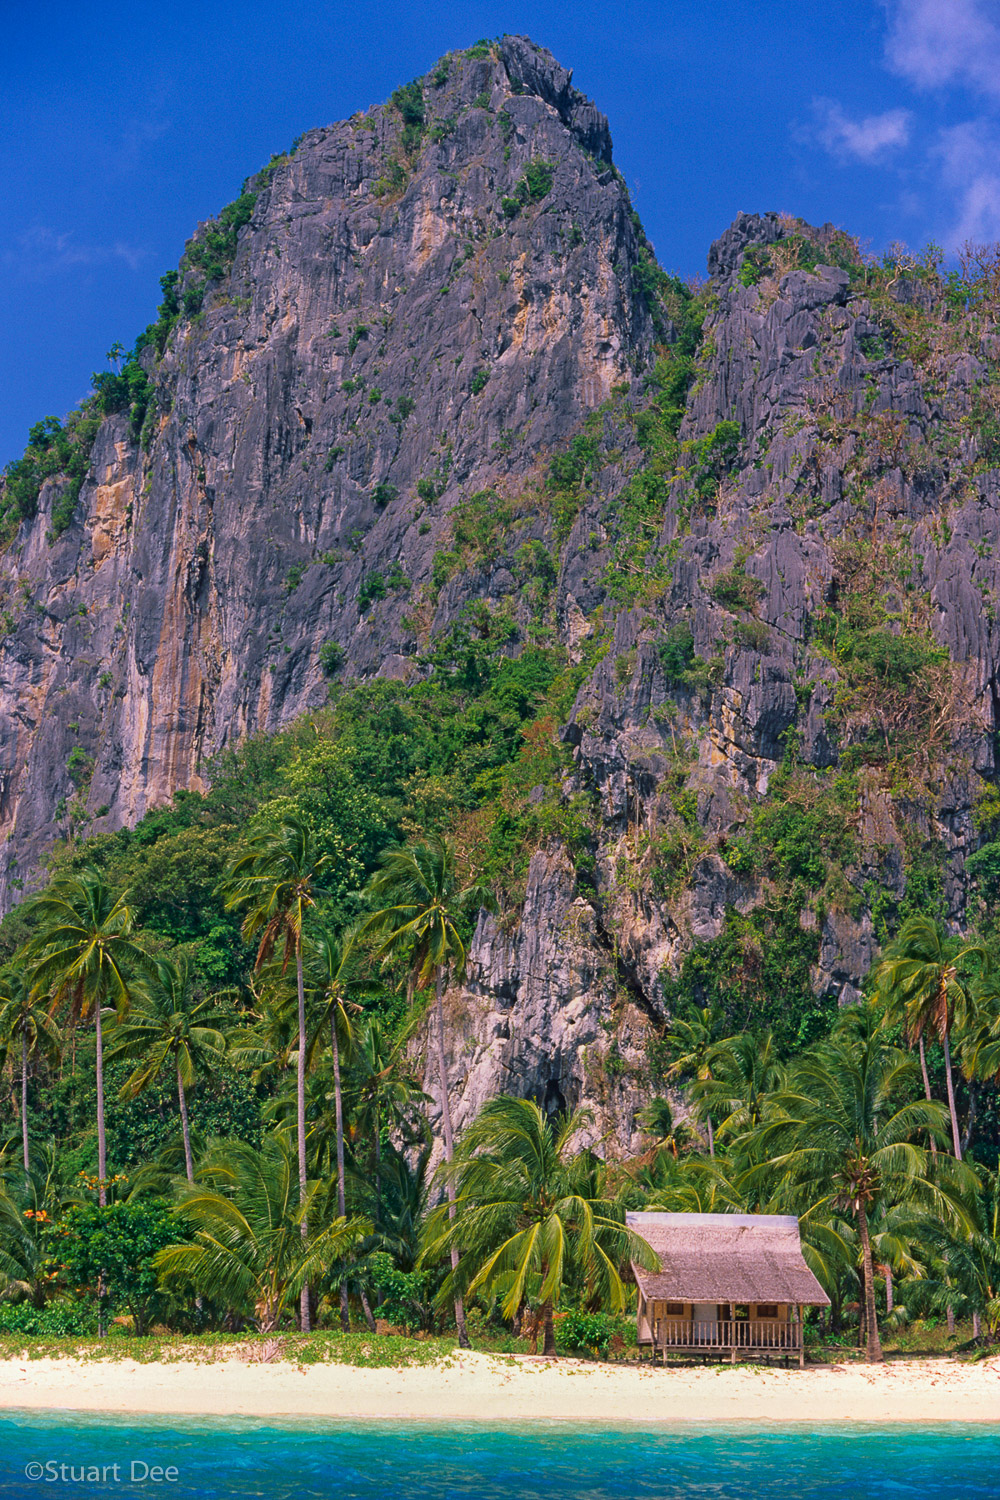 Lone nipa hut amid palm trees, in front of limestone cliff, on an island. Pinagbuyutan Island, El Nido, Palawan, Phiippines